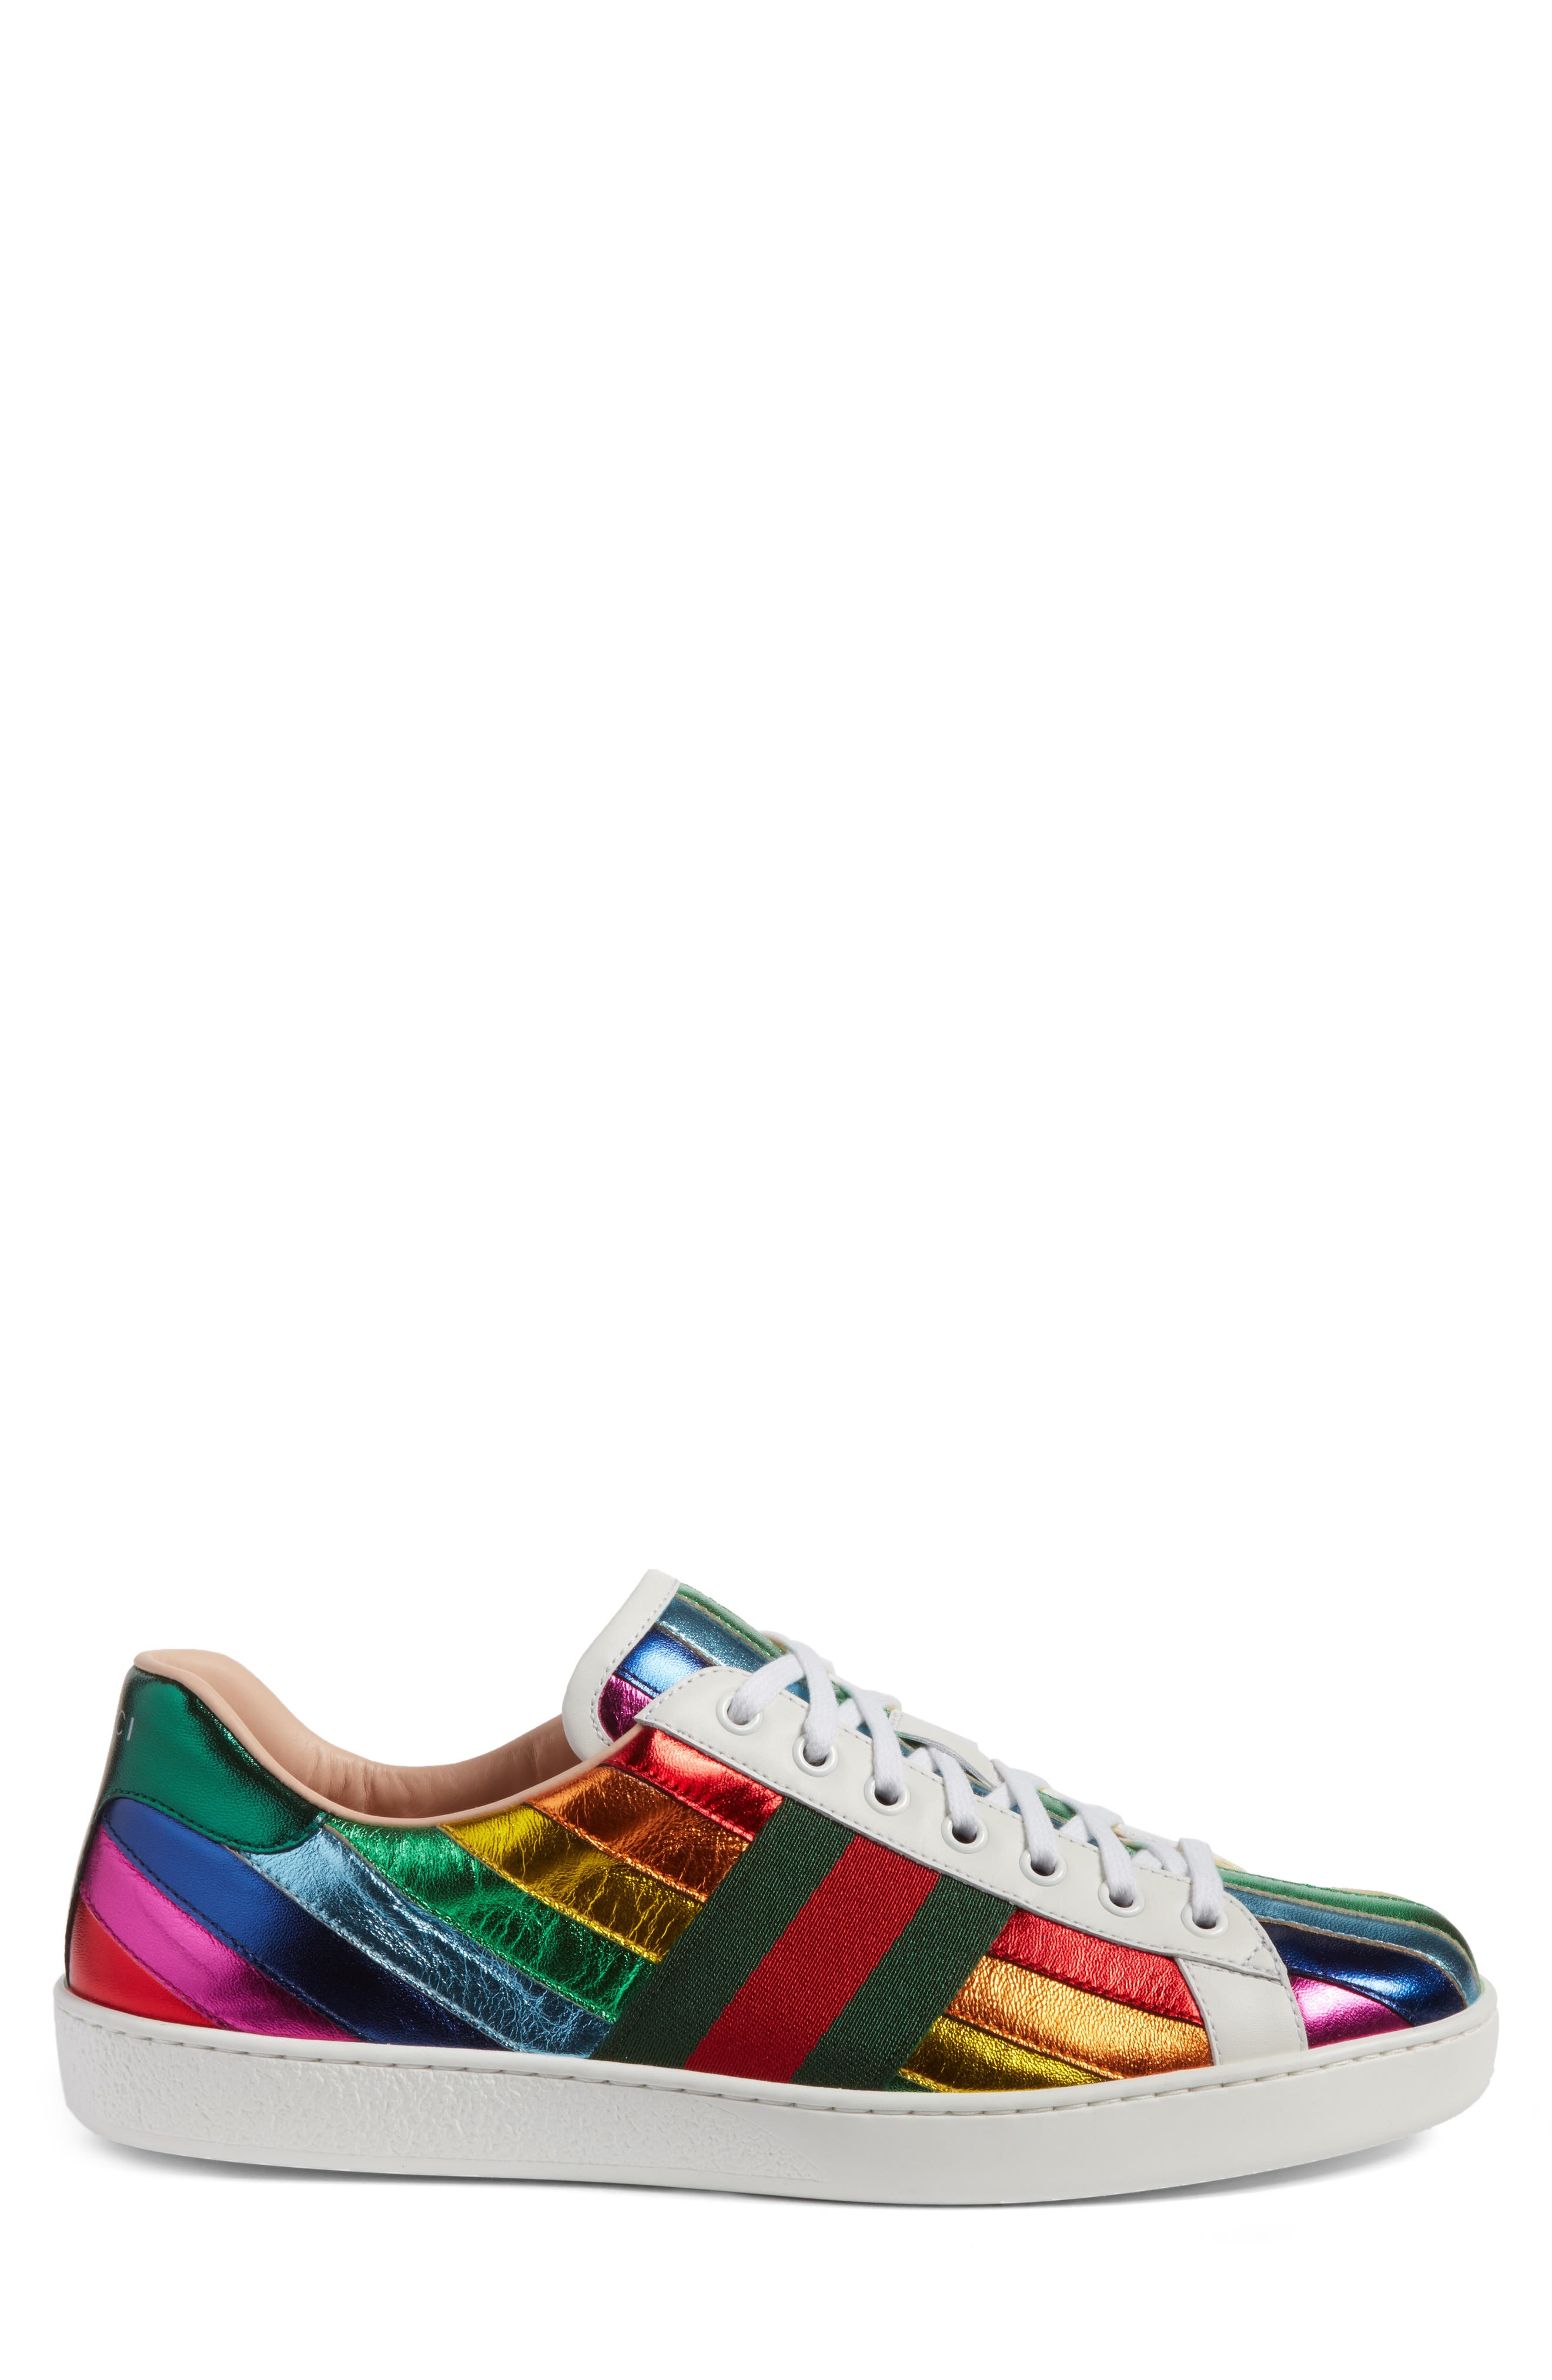 Alternate Image 3  - Gucci New Ace Rainbow Sneaker (Men)